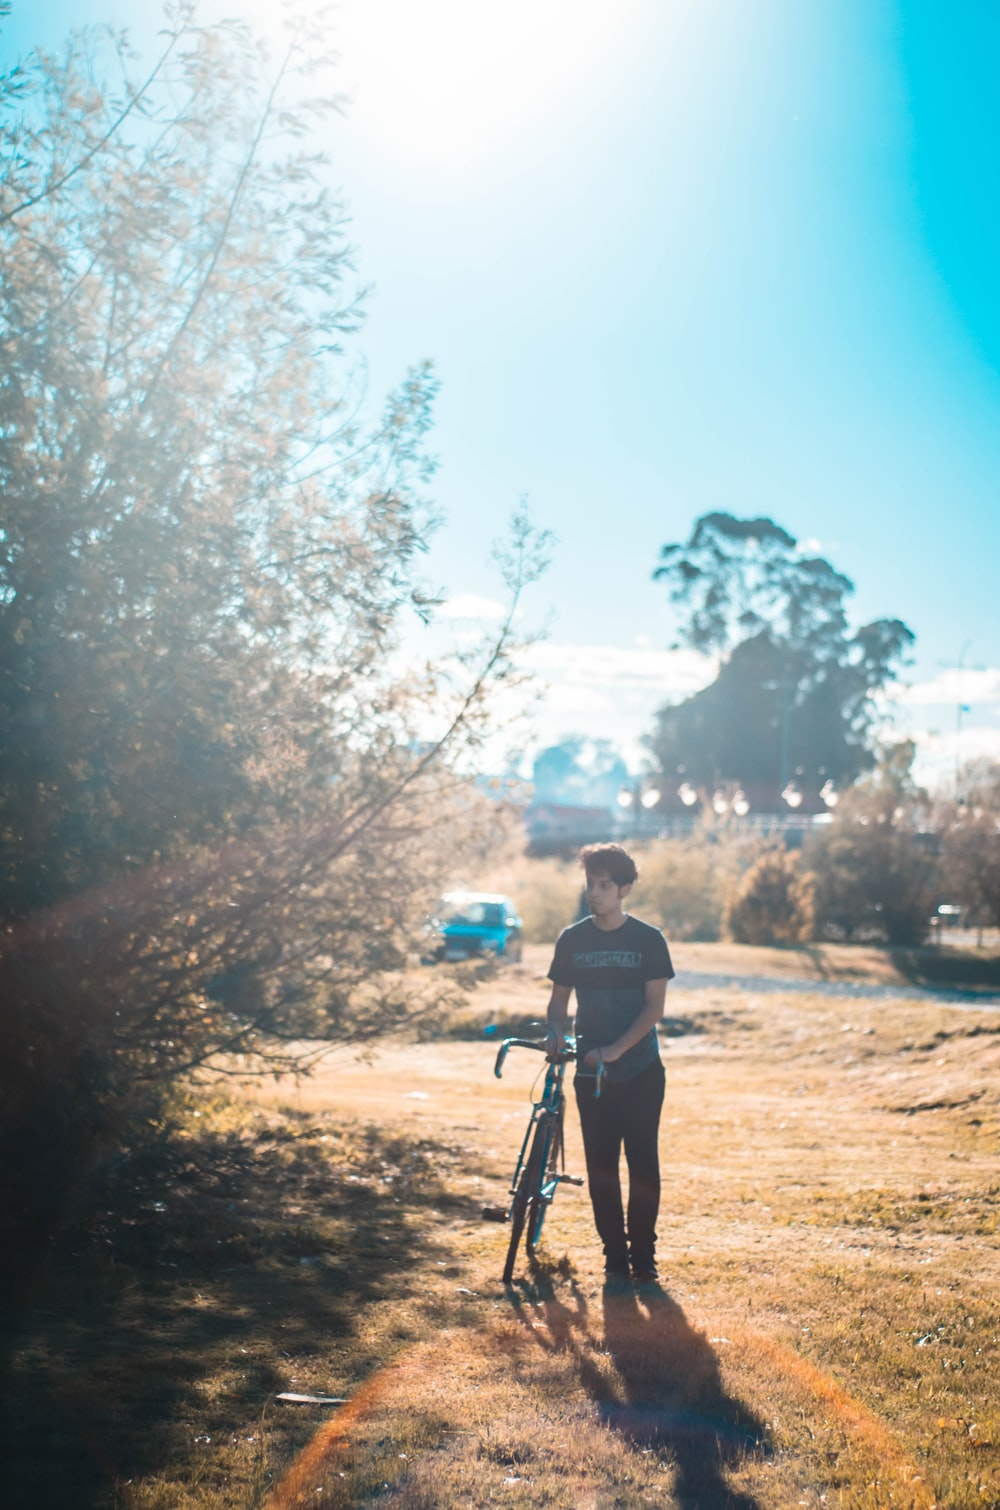 man standing beside bike and tree